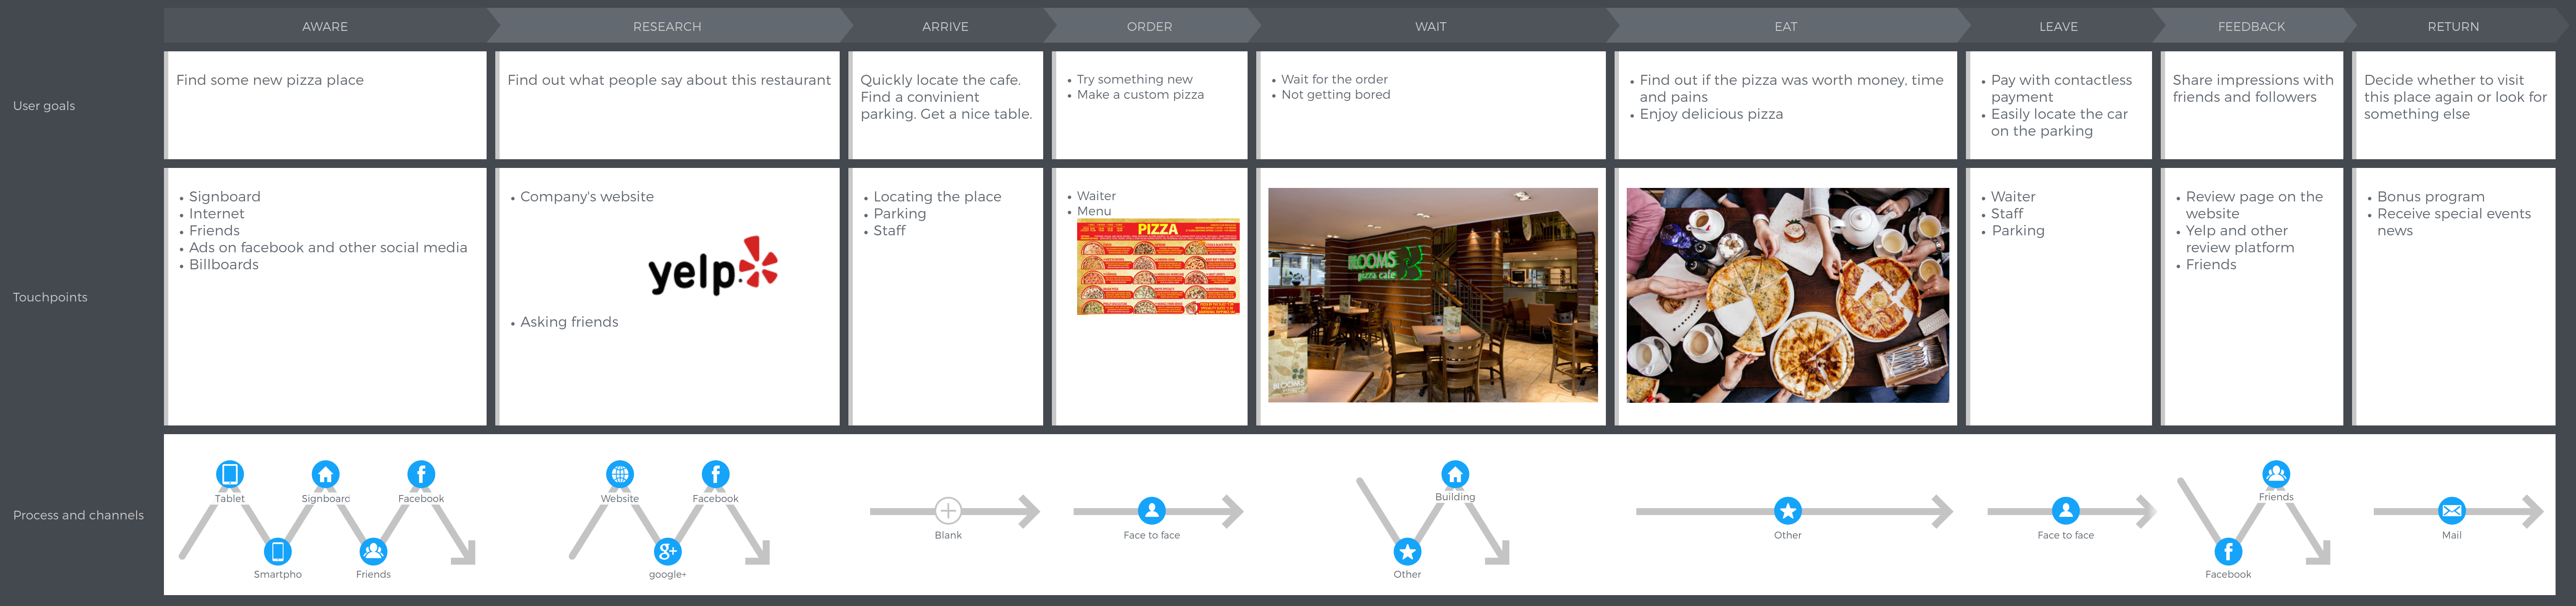 customer-journey-map-processes-and-channels